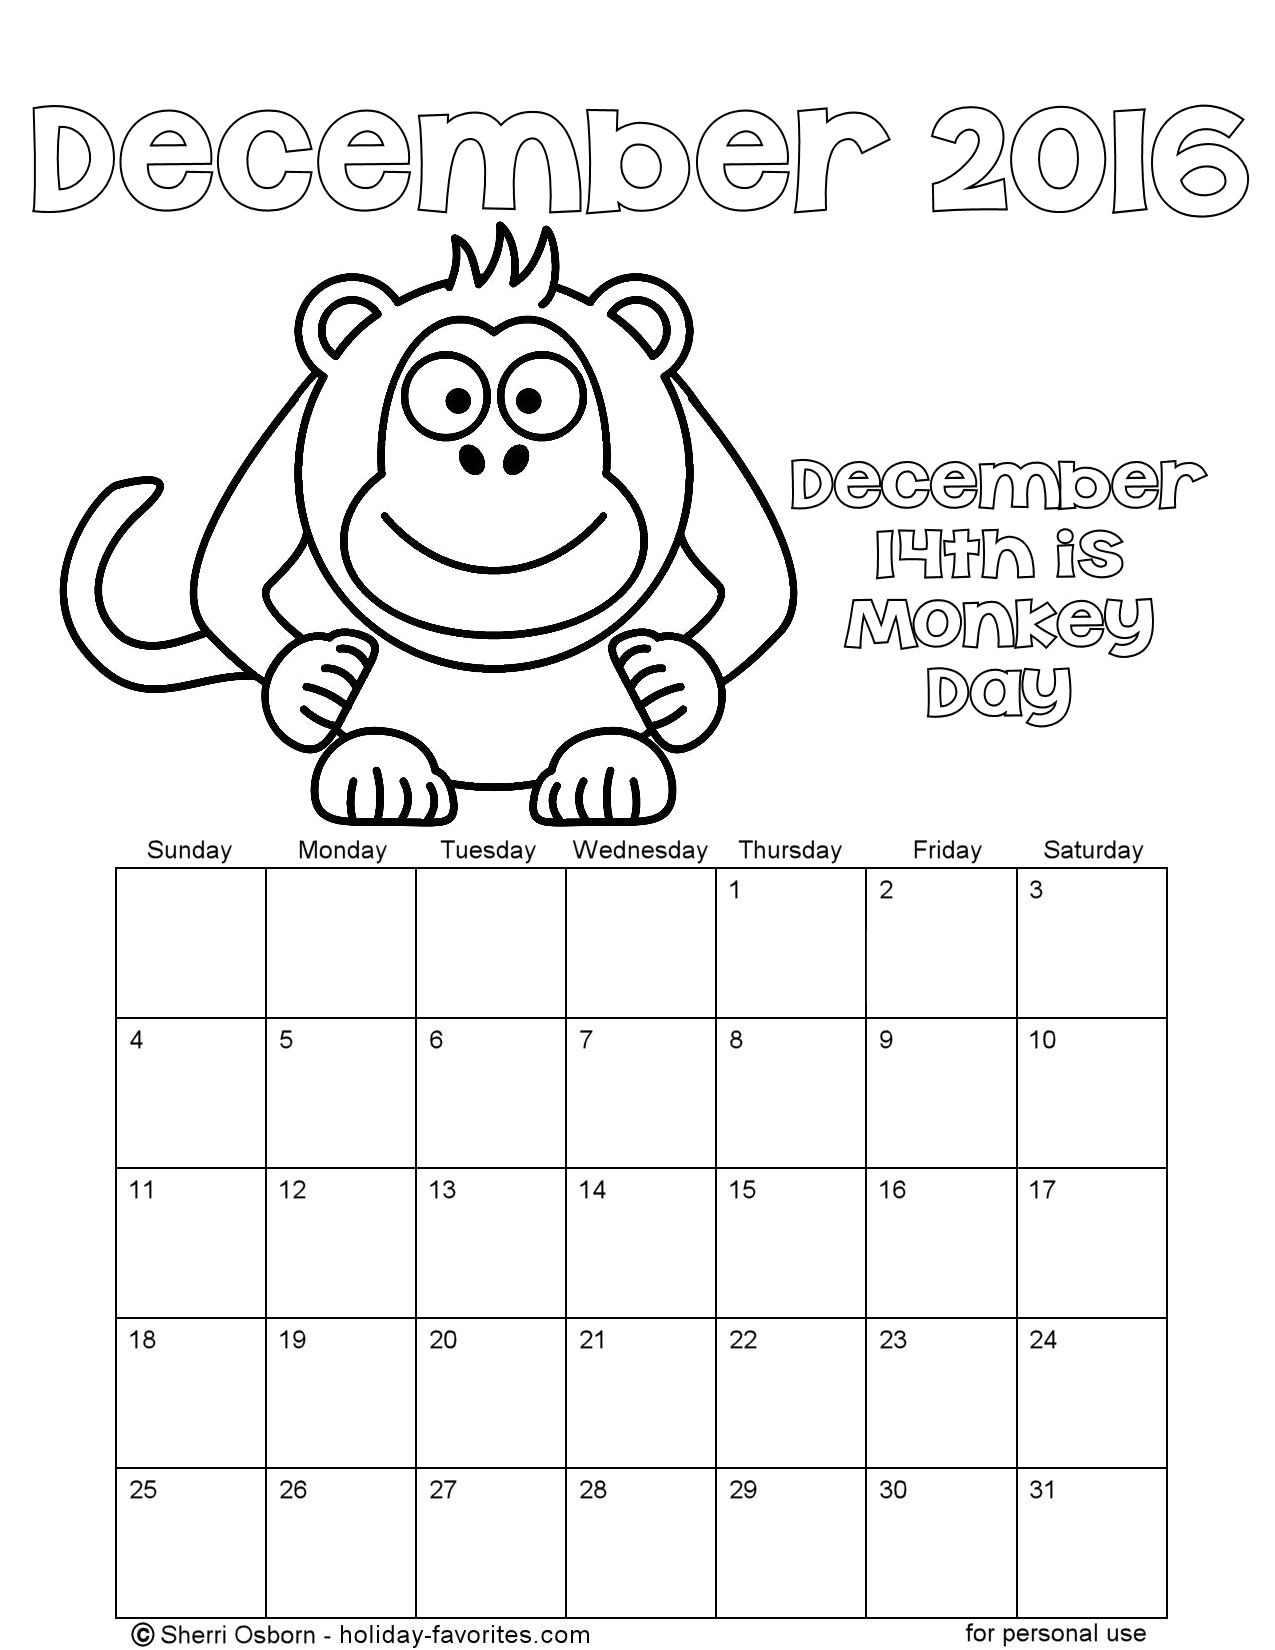 December 2016 Monkey Coloring Calendar Page